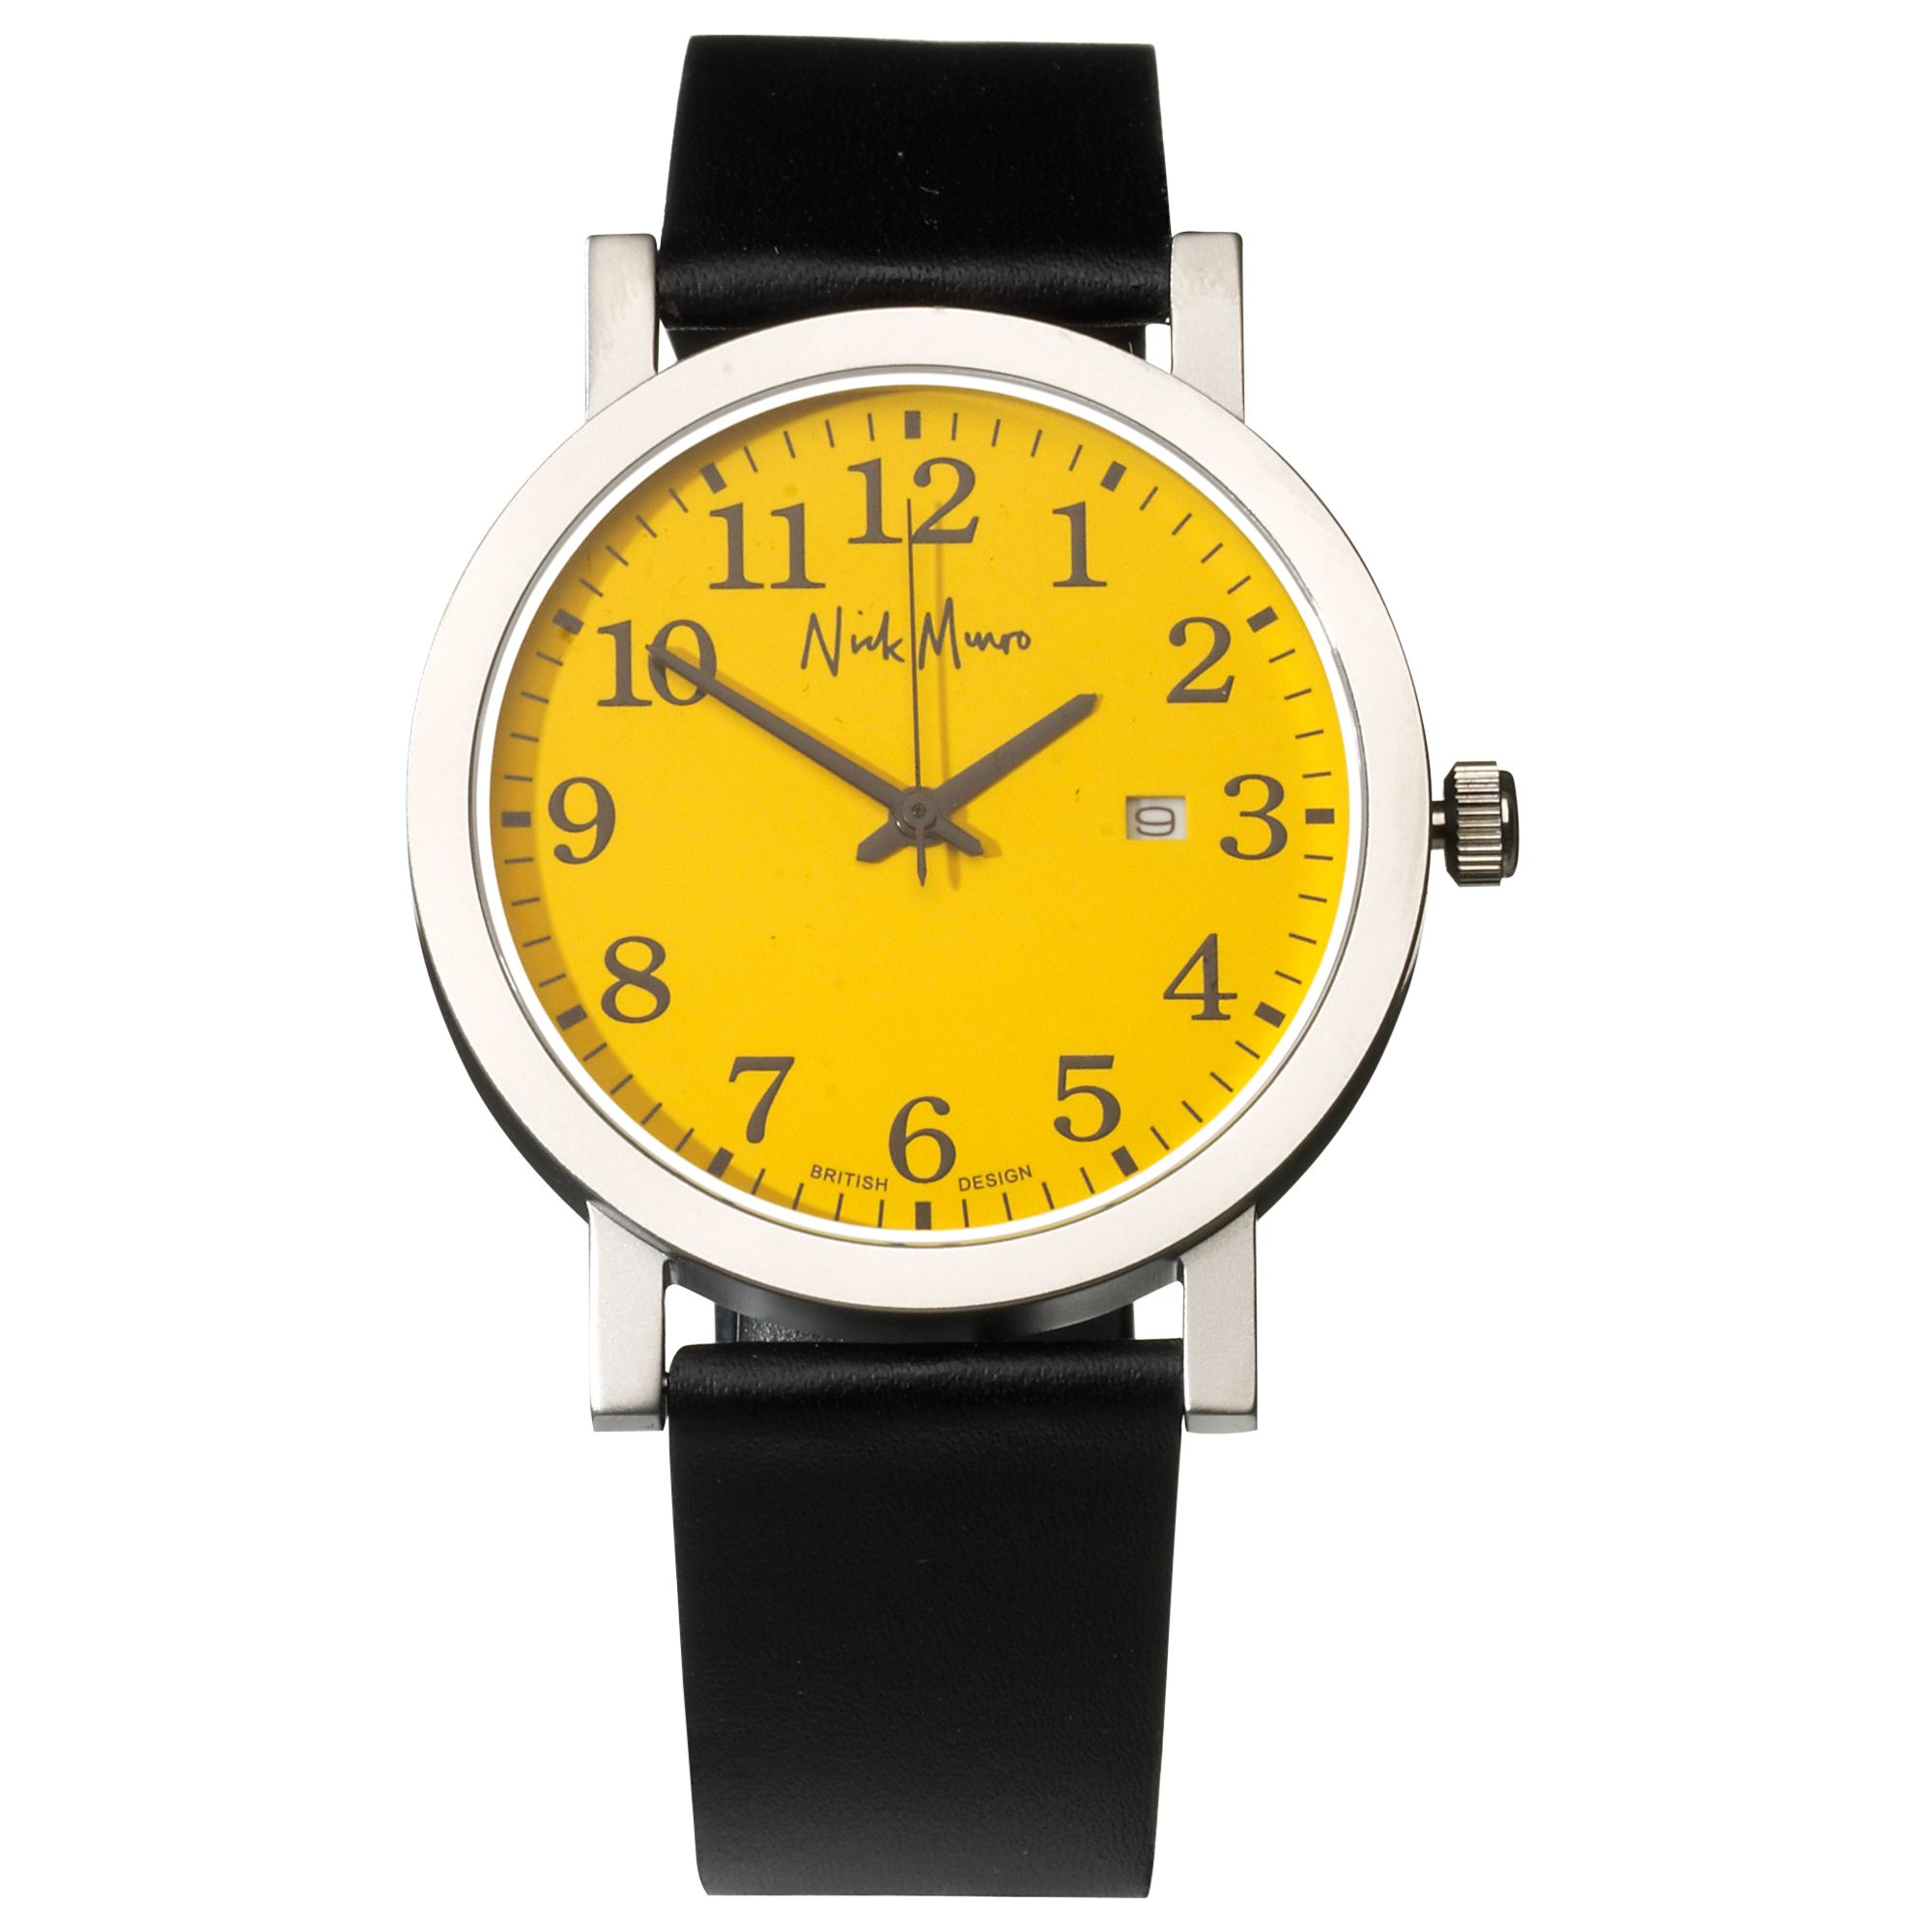 Nick Munro NM00130 Unisex Black Round Dial Black Strap Watch, Yellow